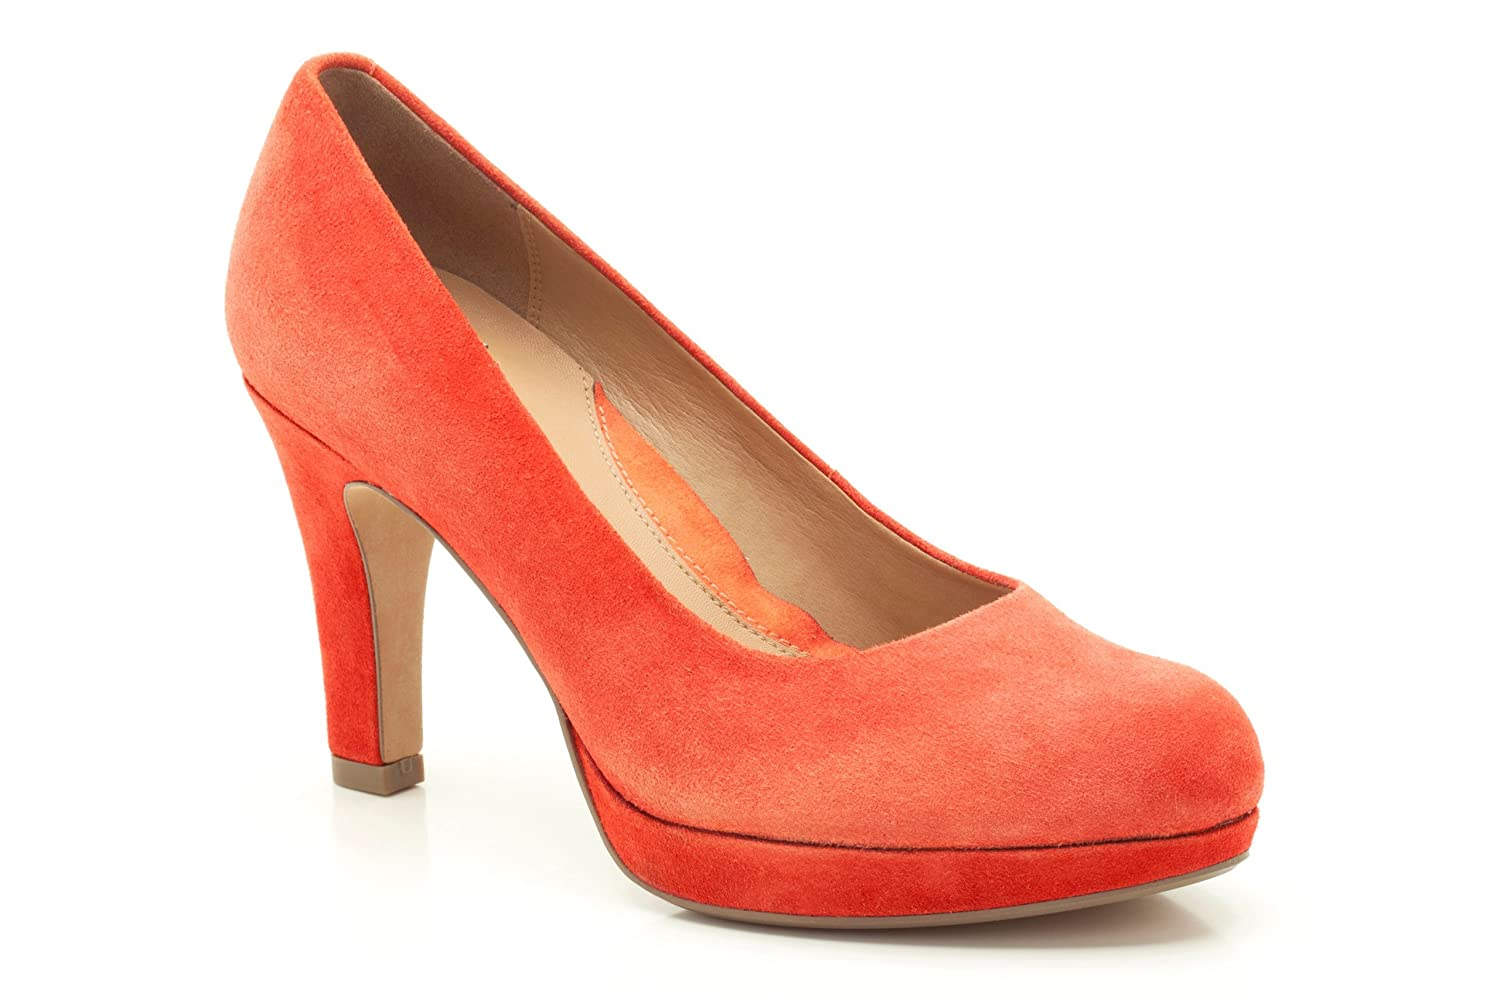 452ce48c27b Clarks Womens Smart Clarks Anika Kendra Suede Shoes In Orange Wide Fit Size  6  Amazon.co.uk  Shoes   Bags